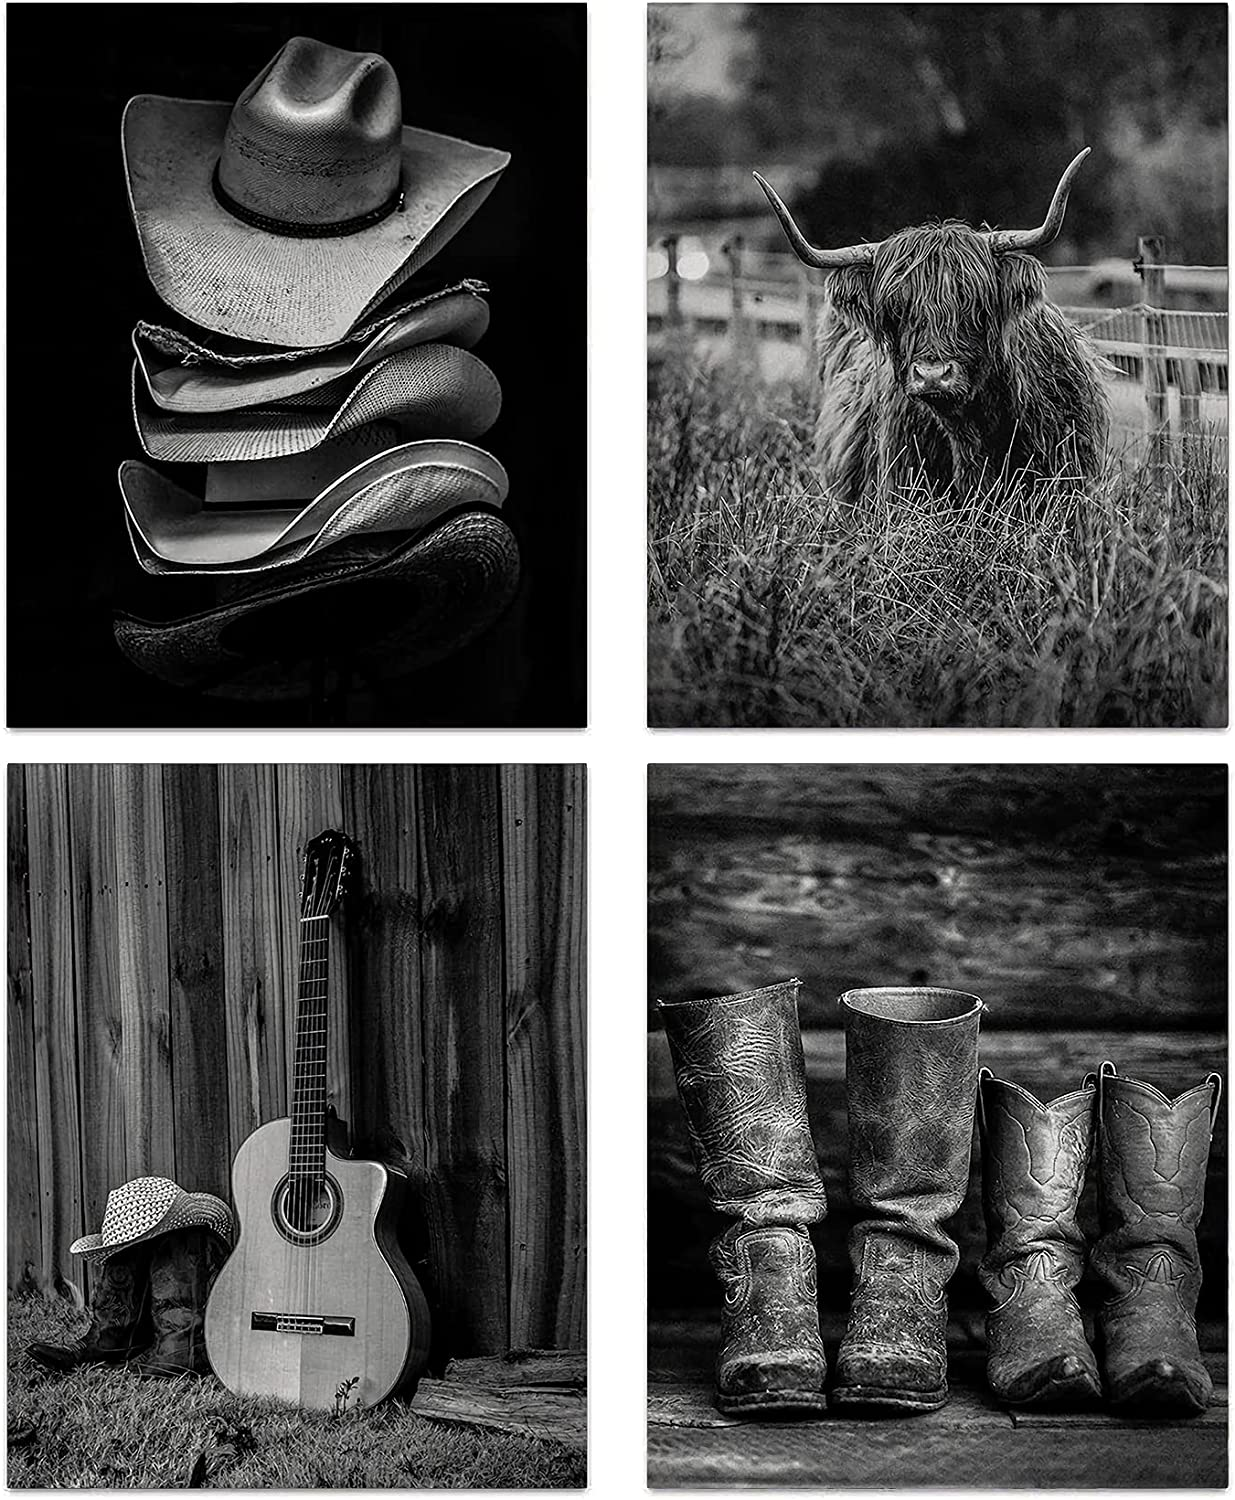 Highland Cow Art Print, Western Boots and Straw Hat Decor Cowboy Wall Art, Black and White Longhorn Wall Art, Vintage Farmhouse Canvas Wall Art for Men's Bedroom Decor, Set of 4-(8